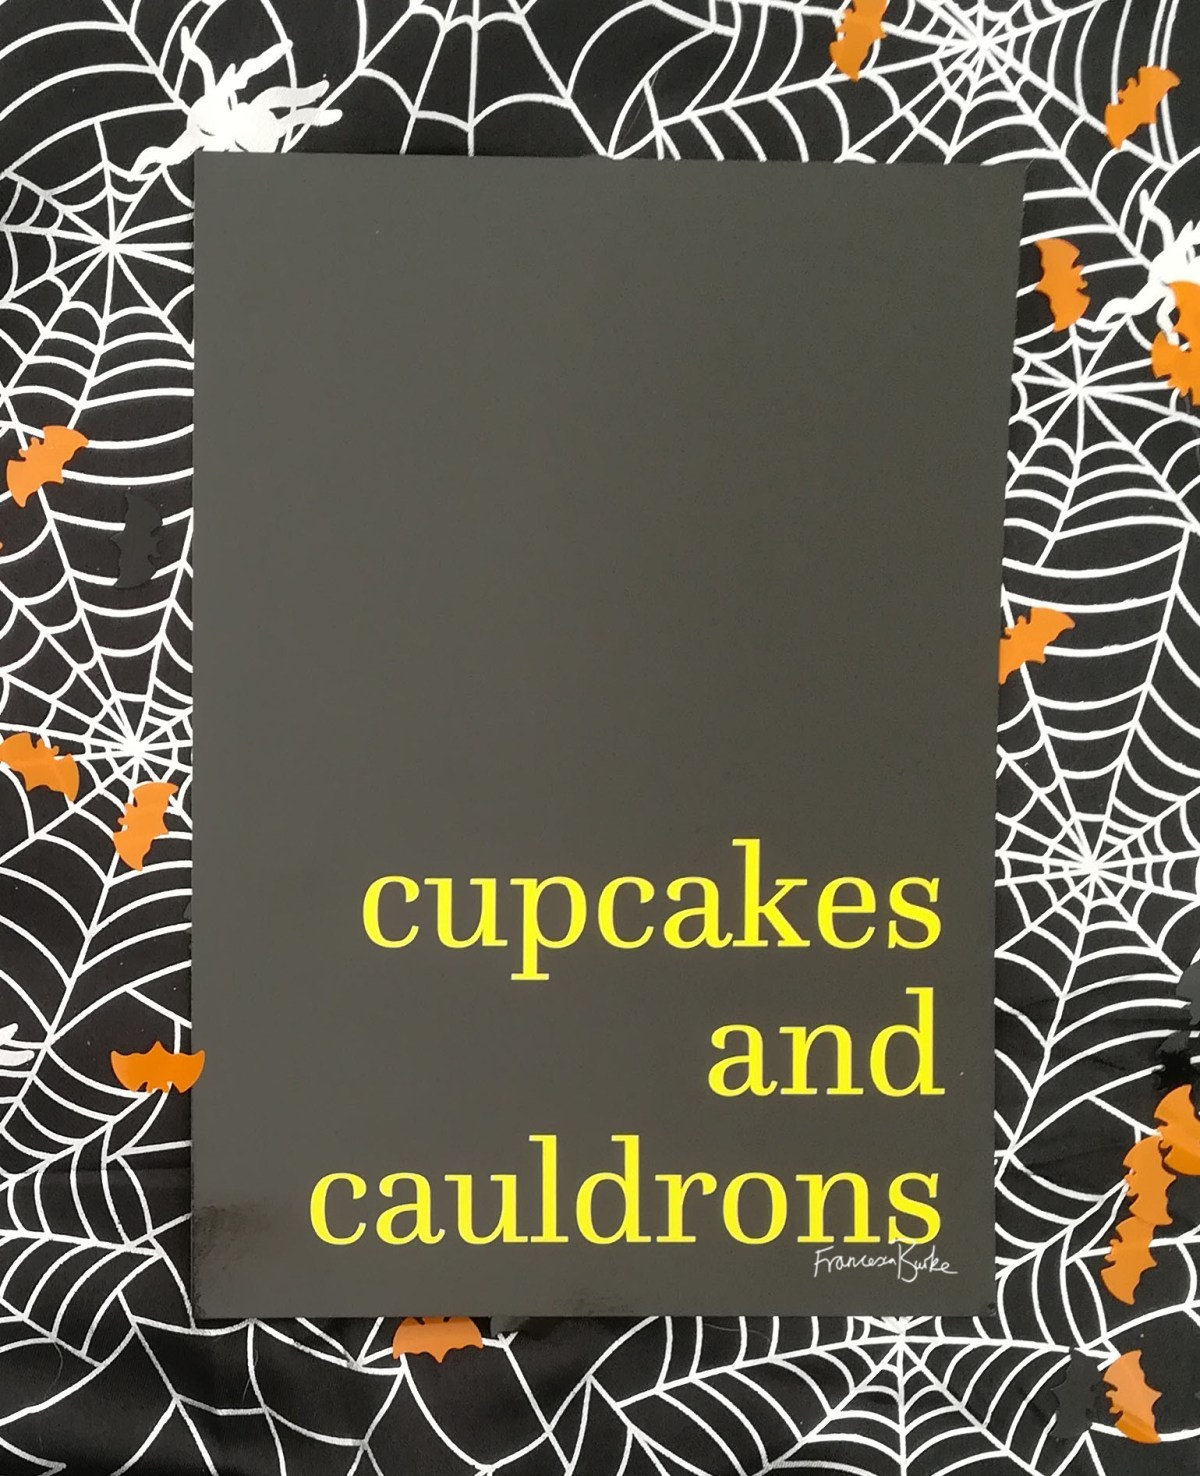 black and yellow print reading 'cupcakes and cauldrons'